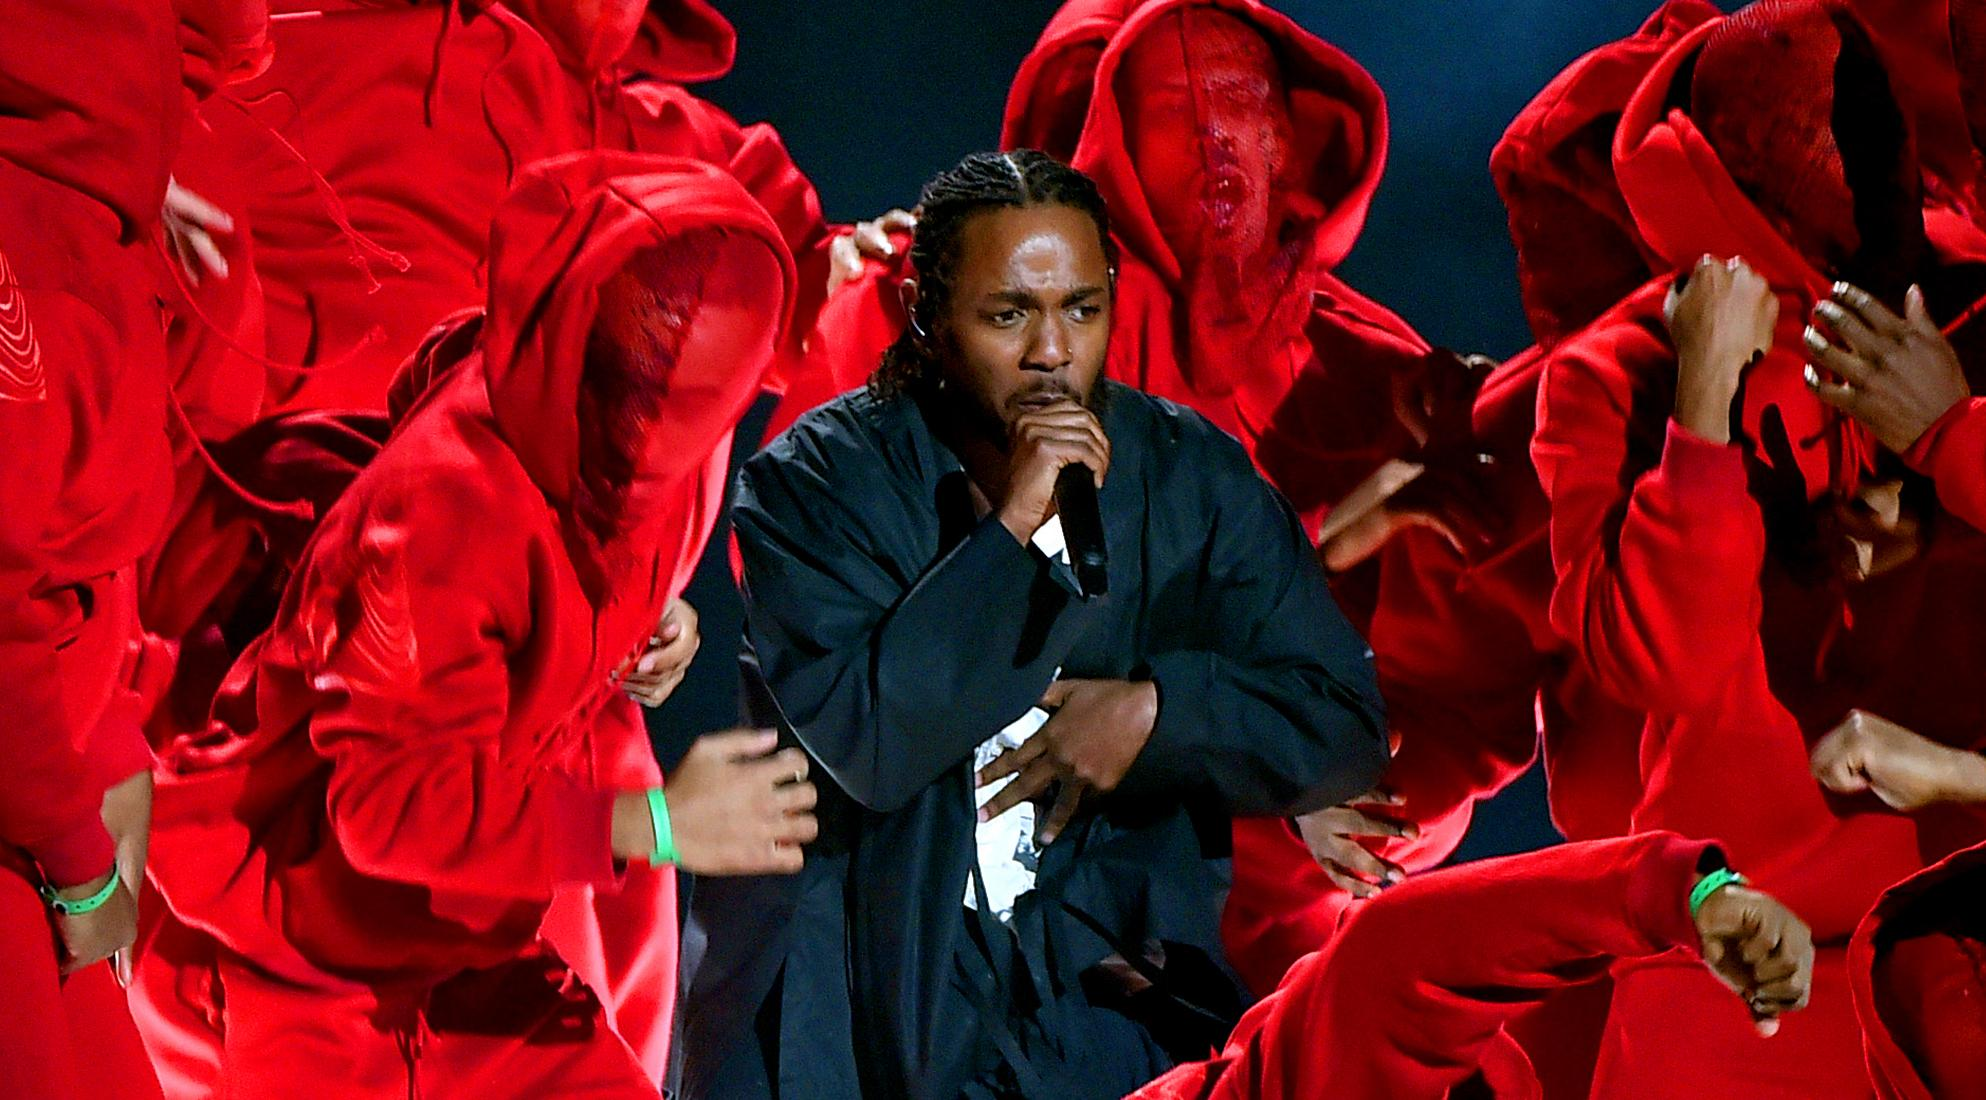 Kendrick Lamar at the 2018 GRAMMYs